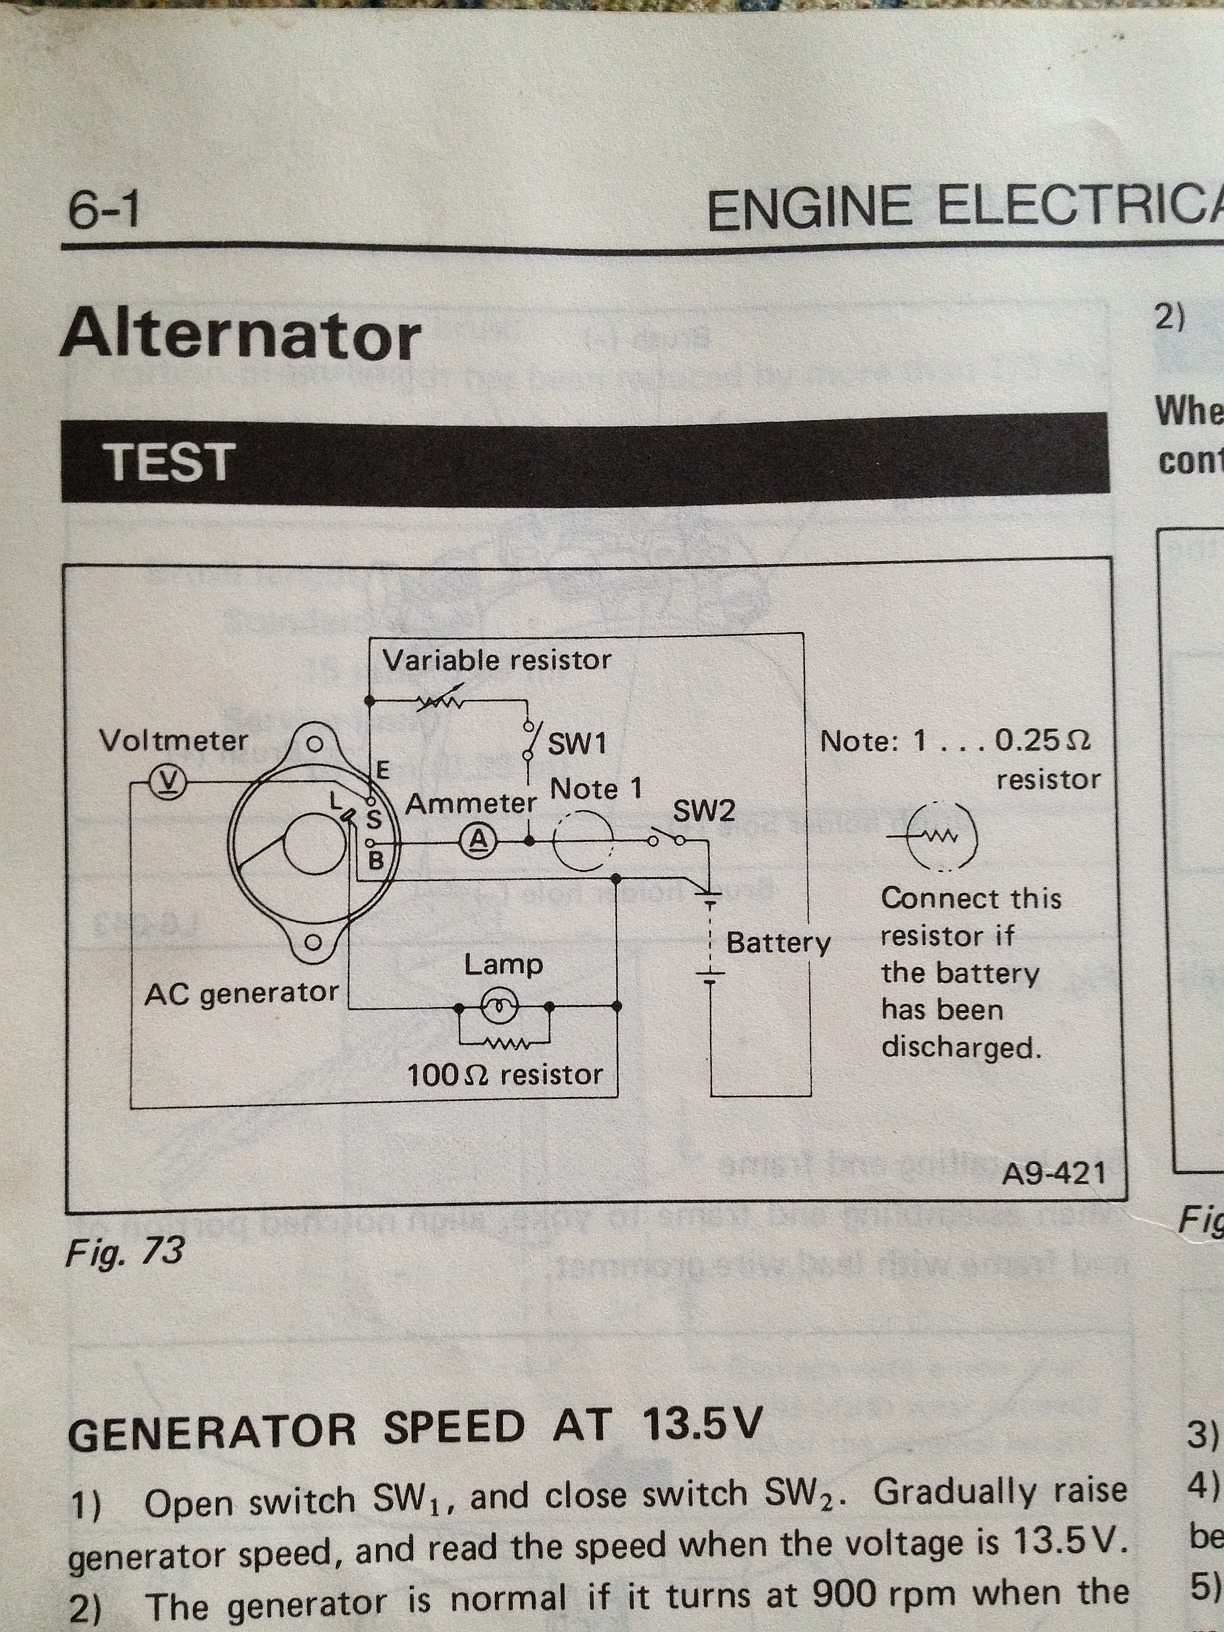 1985 subaru gl wagon alternator wiring diagram old gen 80s gl altwireg asfbconference2016 Choice Image